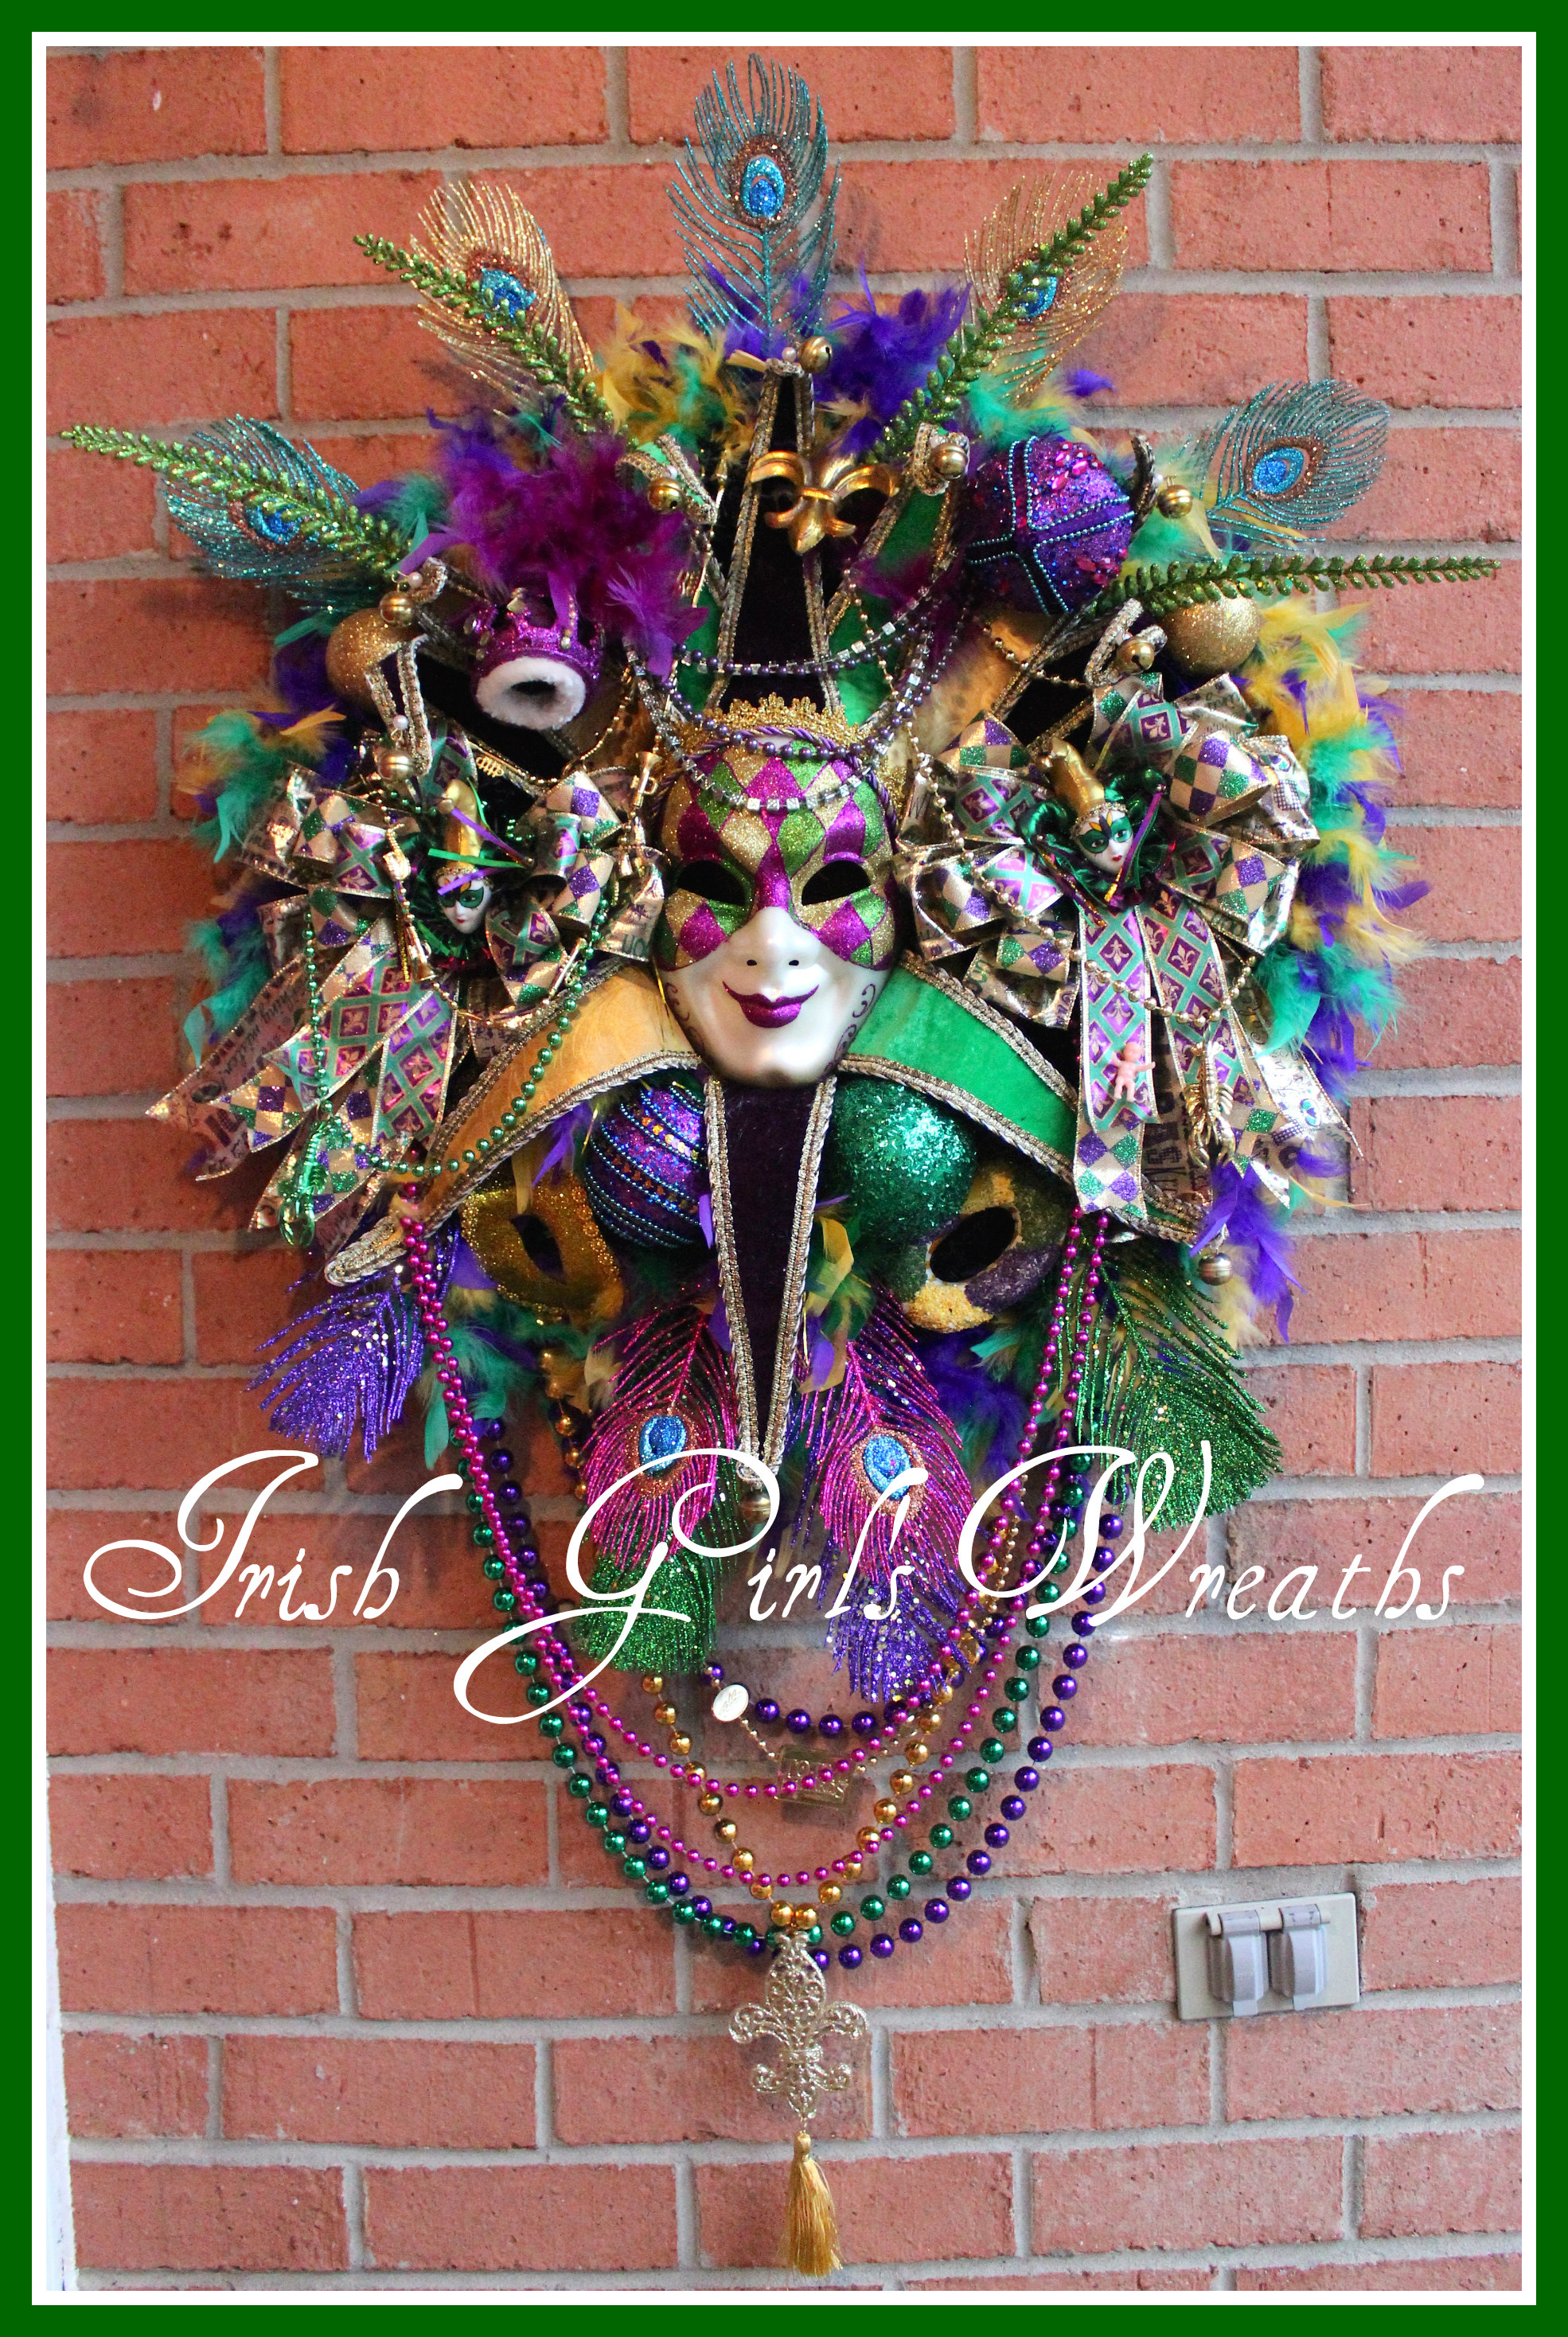 HUGE Harlequin Jester Mask Mardi Gras Carnival Wreath, peacock, King Cake